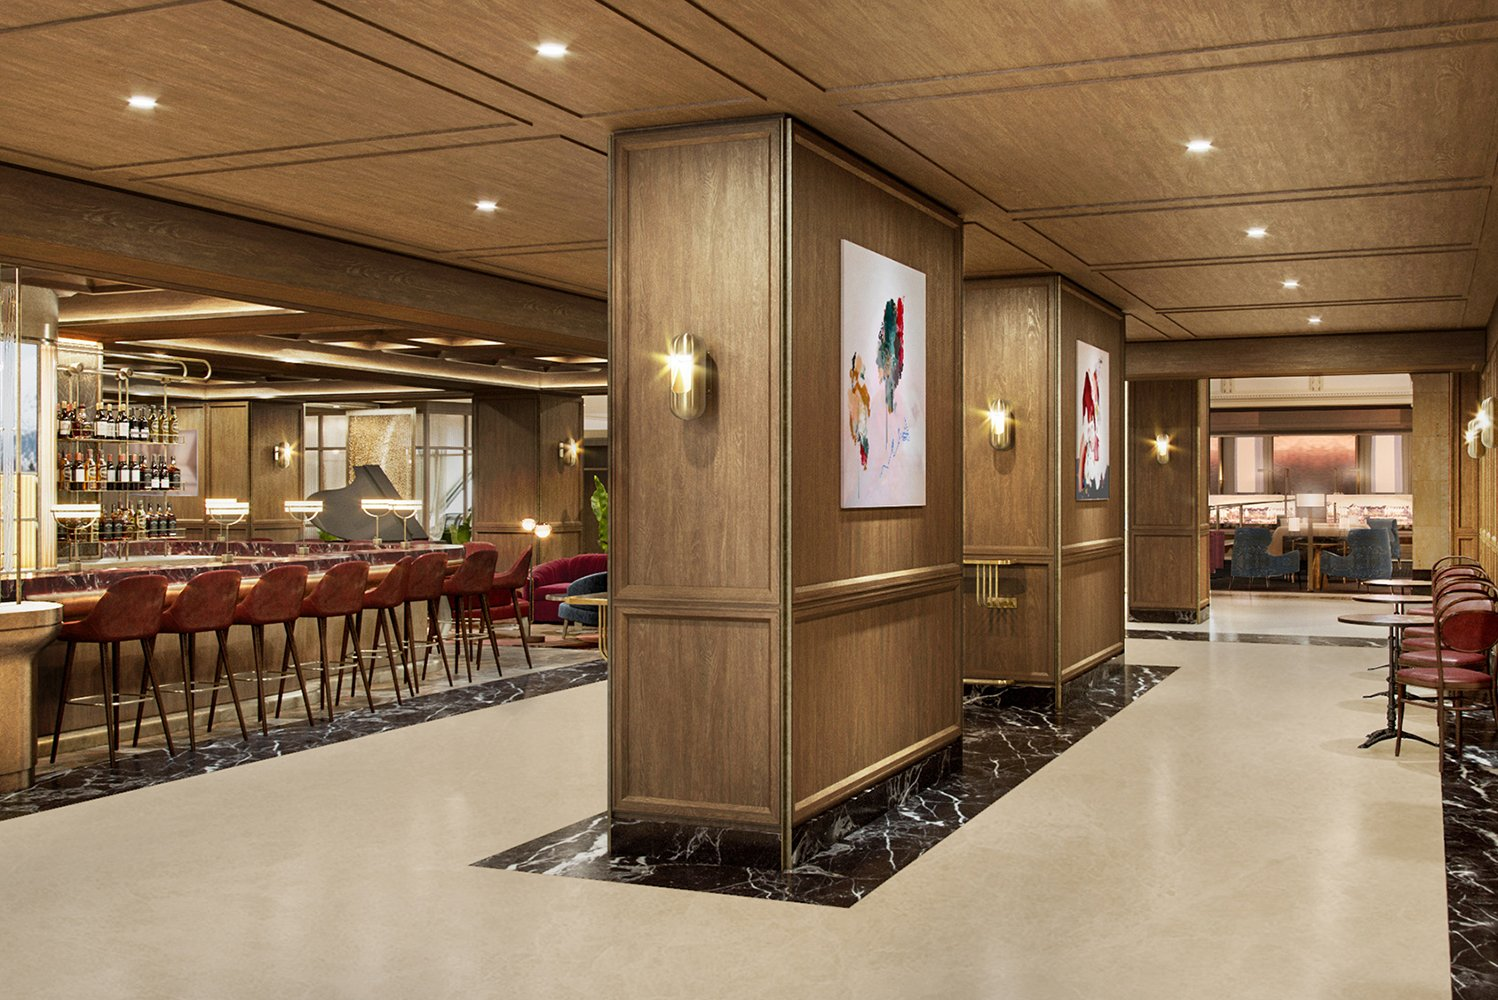 Steps away from the lobby space is the hotel's new dining venue, Reign.